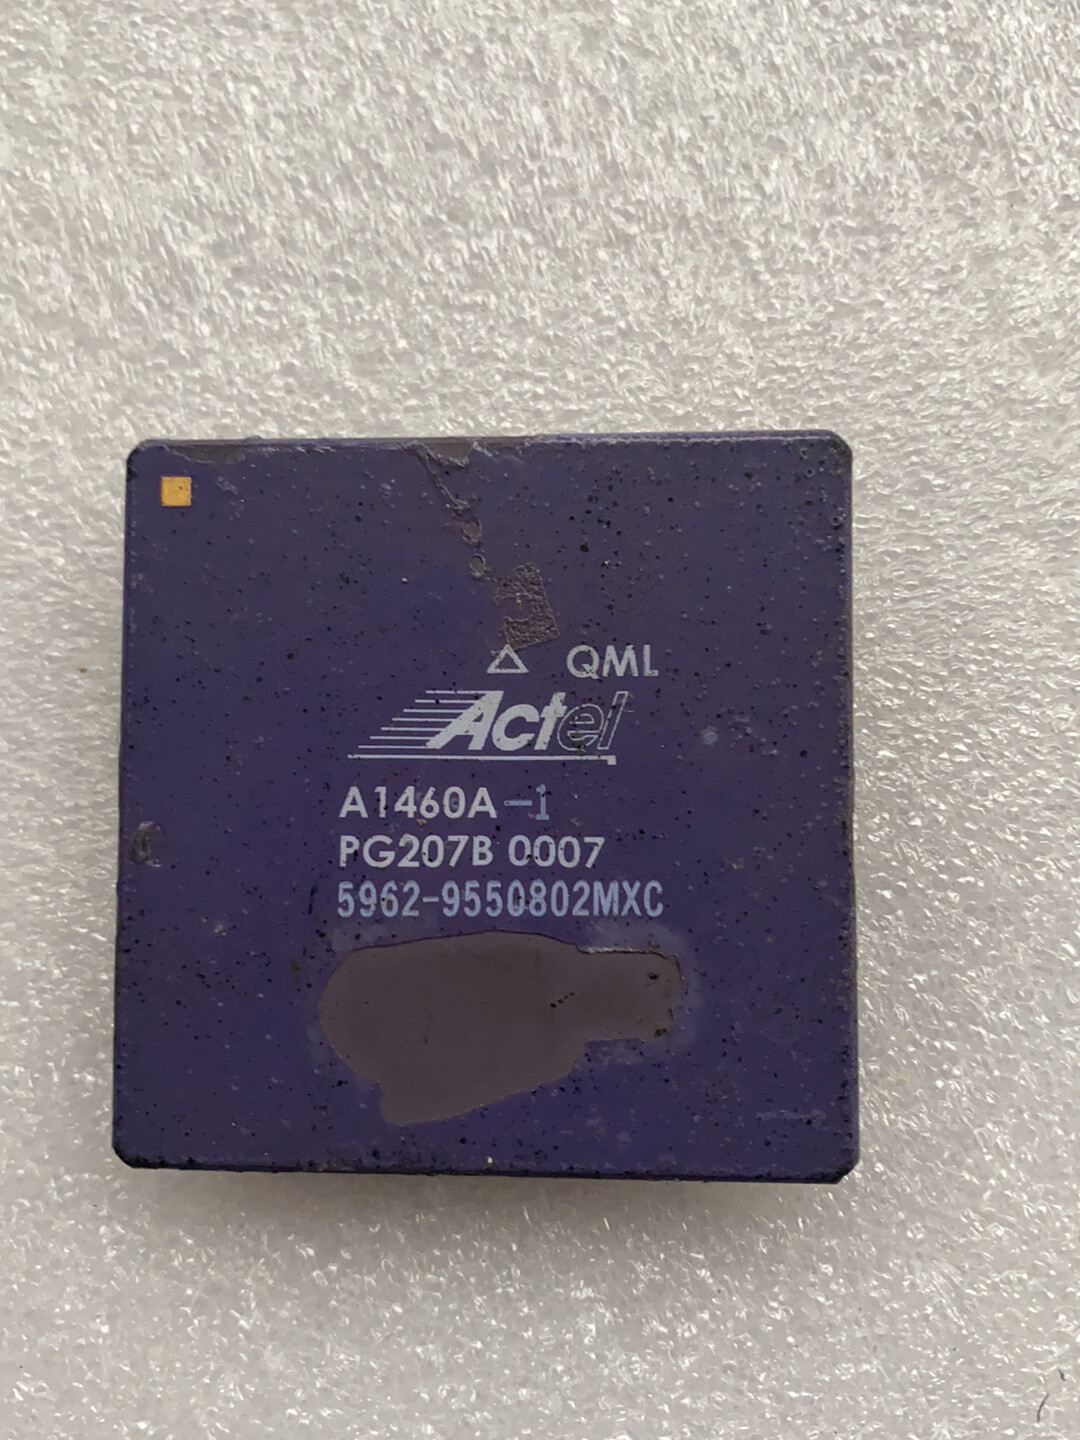 A1460A-1(军工5962-9550802MXC)